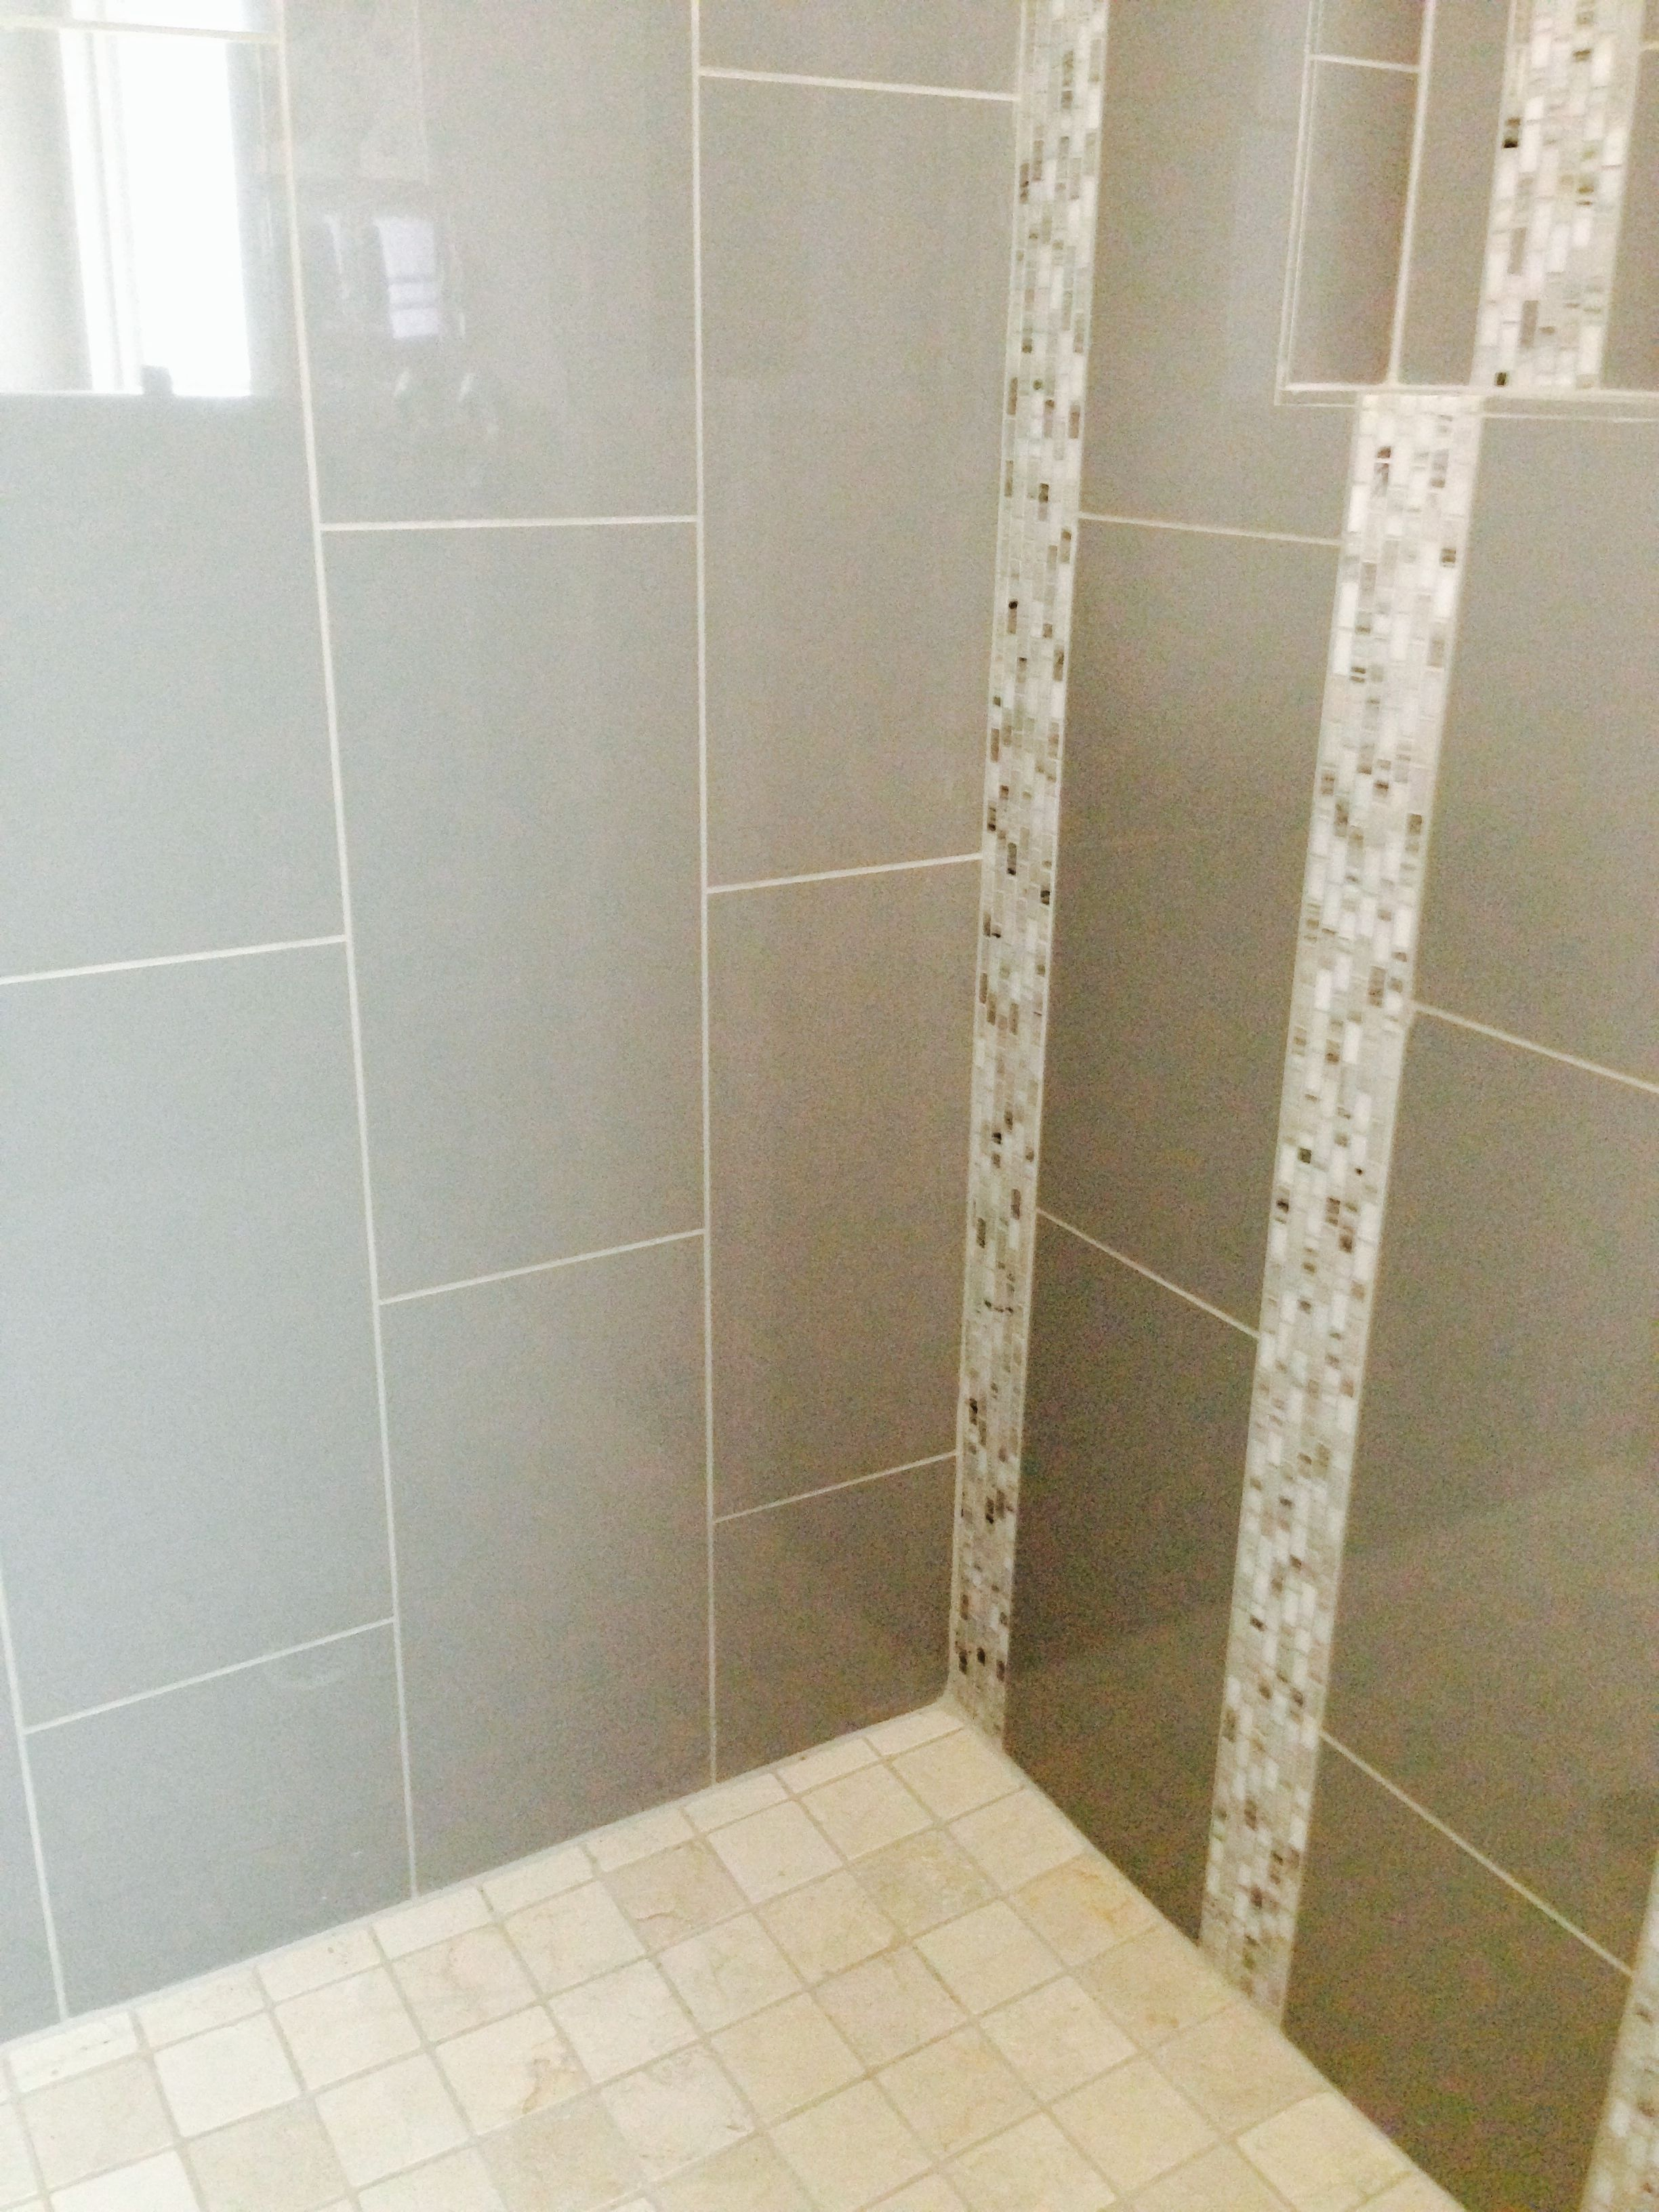 12x24 High Gloss Porcelain Tile With Decorative Mosaic